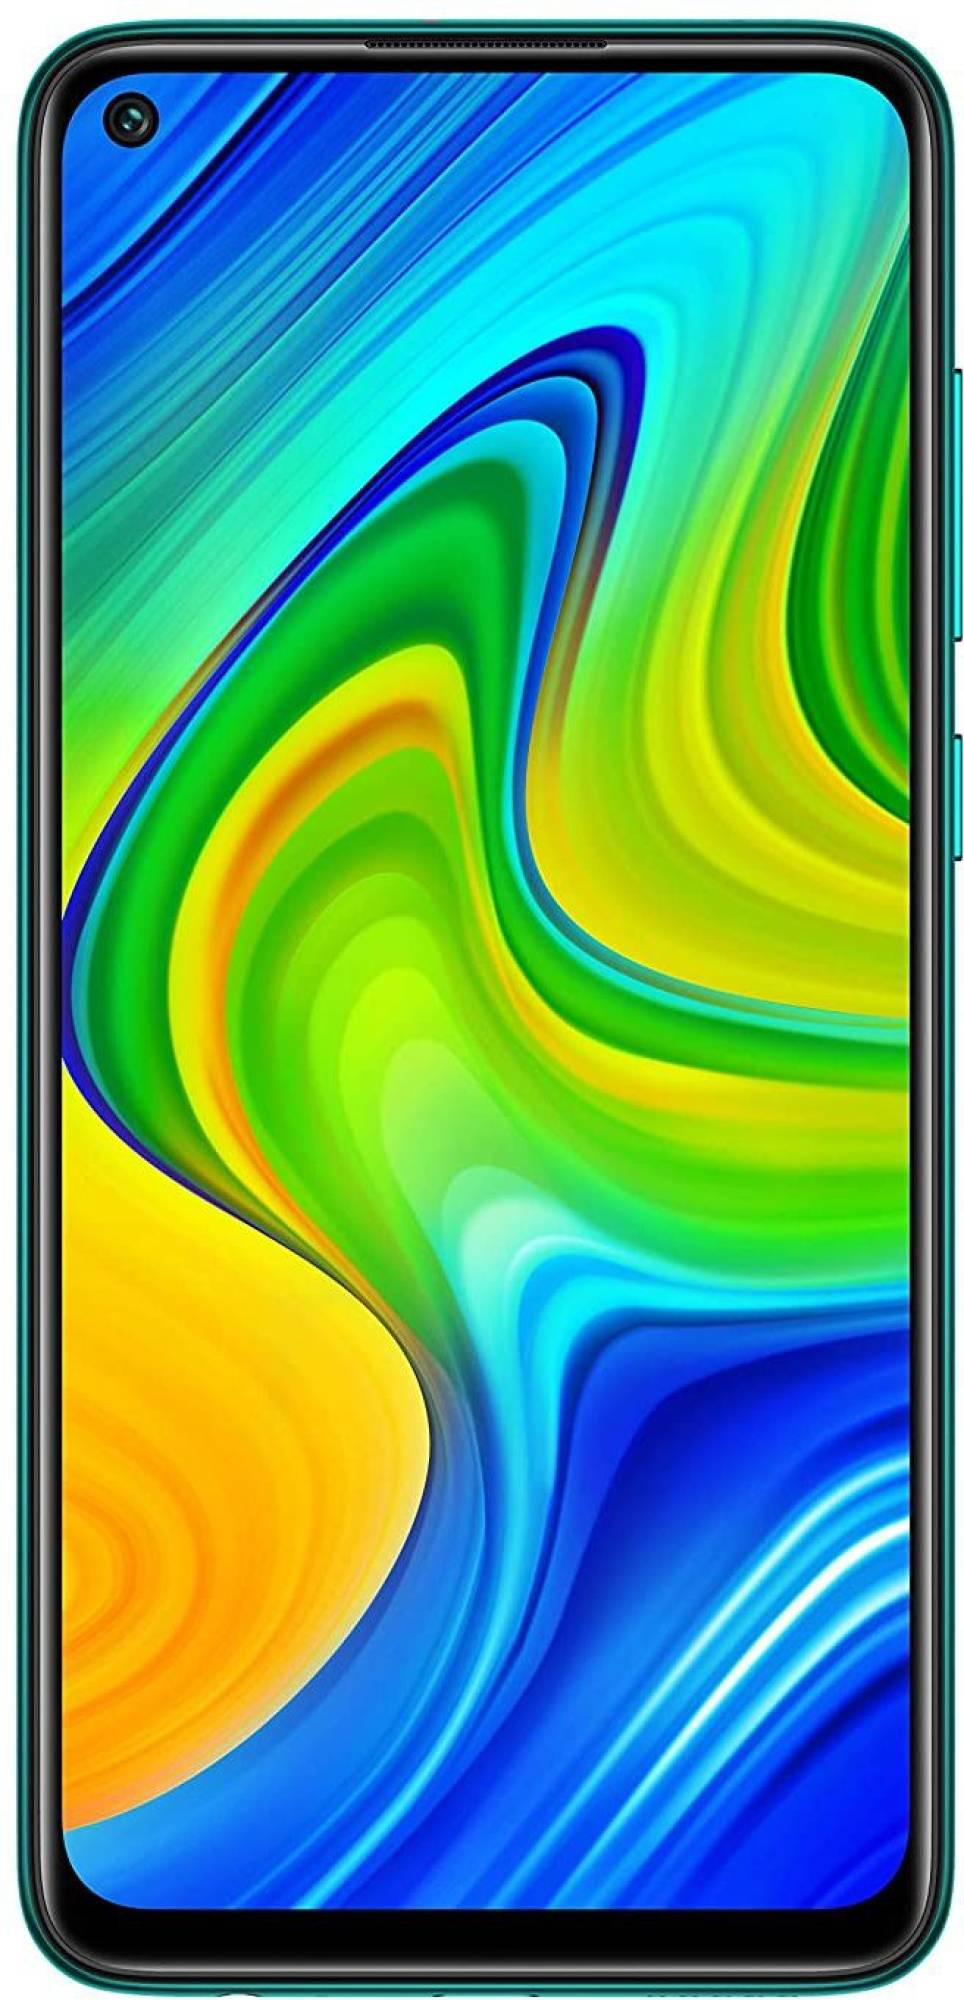 Redmi Note 9 4 GB 128 GB Aqua Green